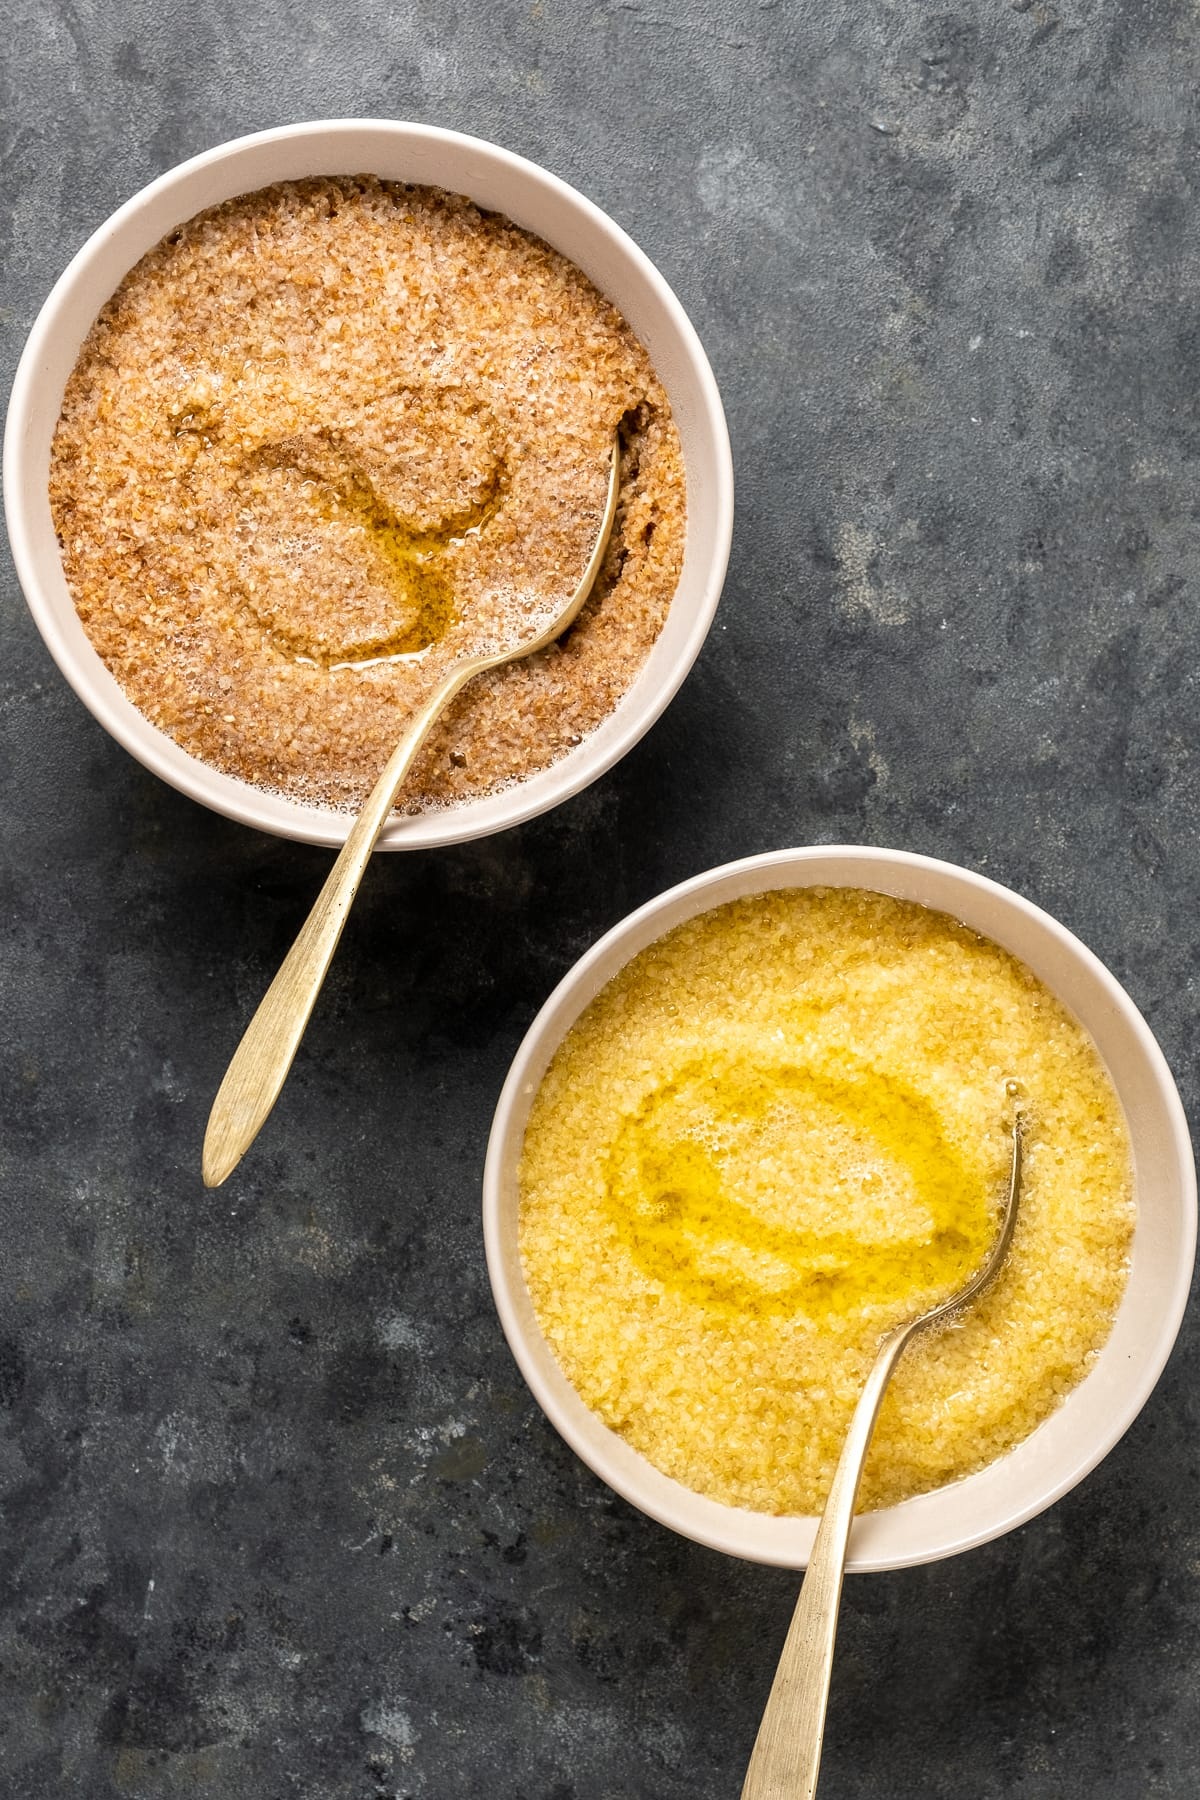 Red fine bulgur and white fine bulgur soaked in water and olive oil in two white bowls with spoons inside them.